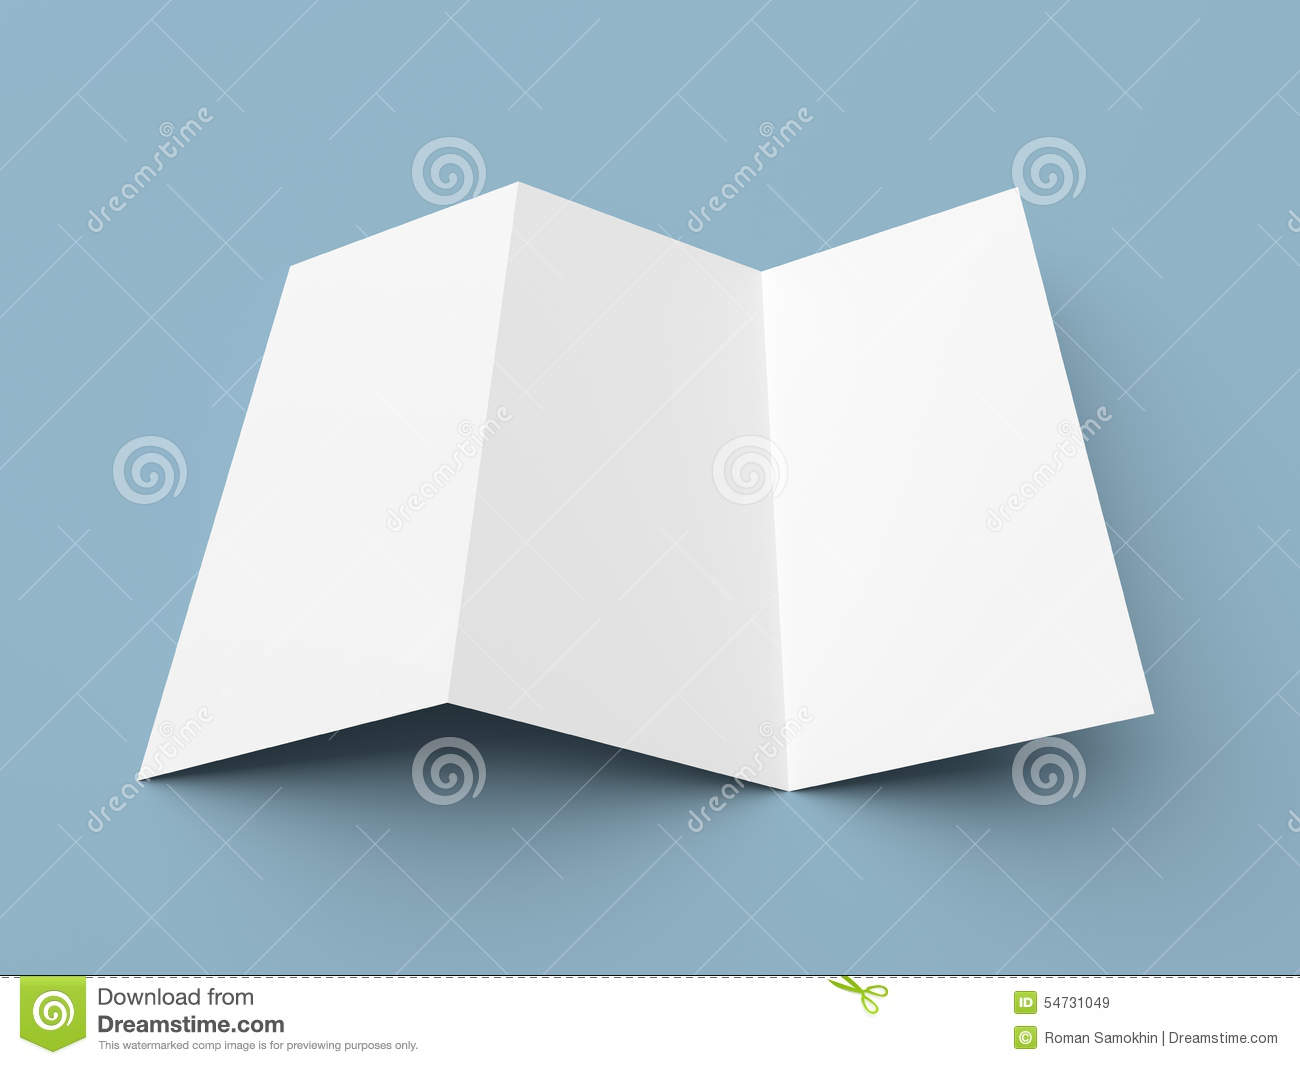 Leaflet blank zigzag fold white paper brochure stock photo for Paper brochure holder template